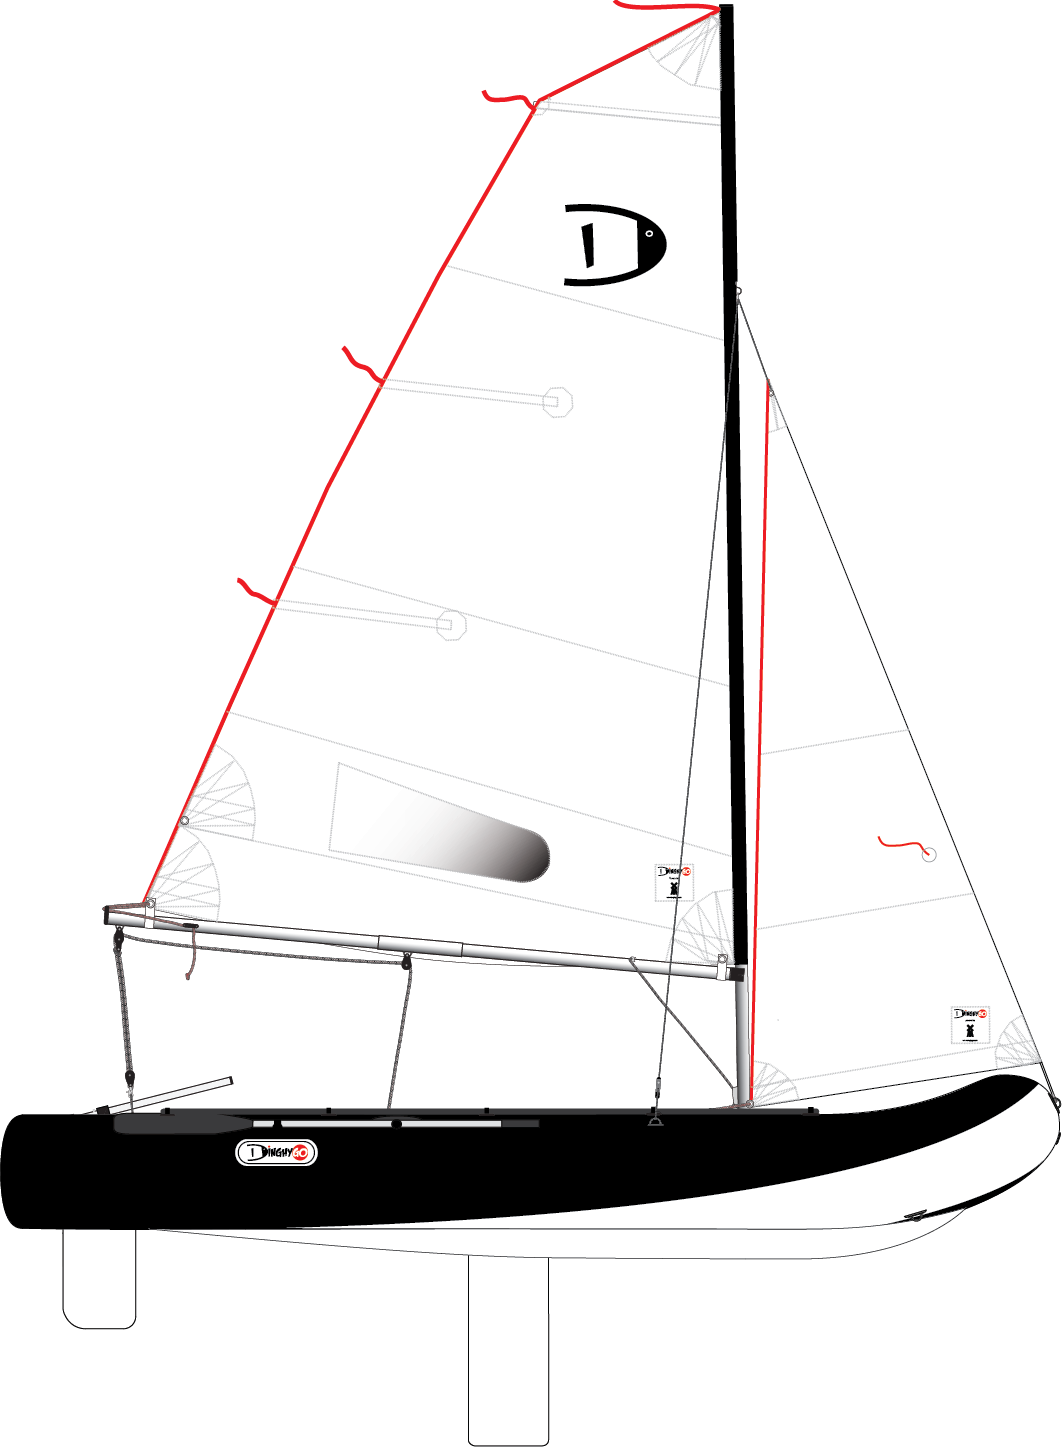 DinghyGo_Orca_375_side_view